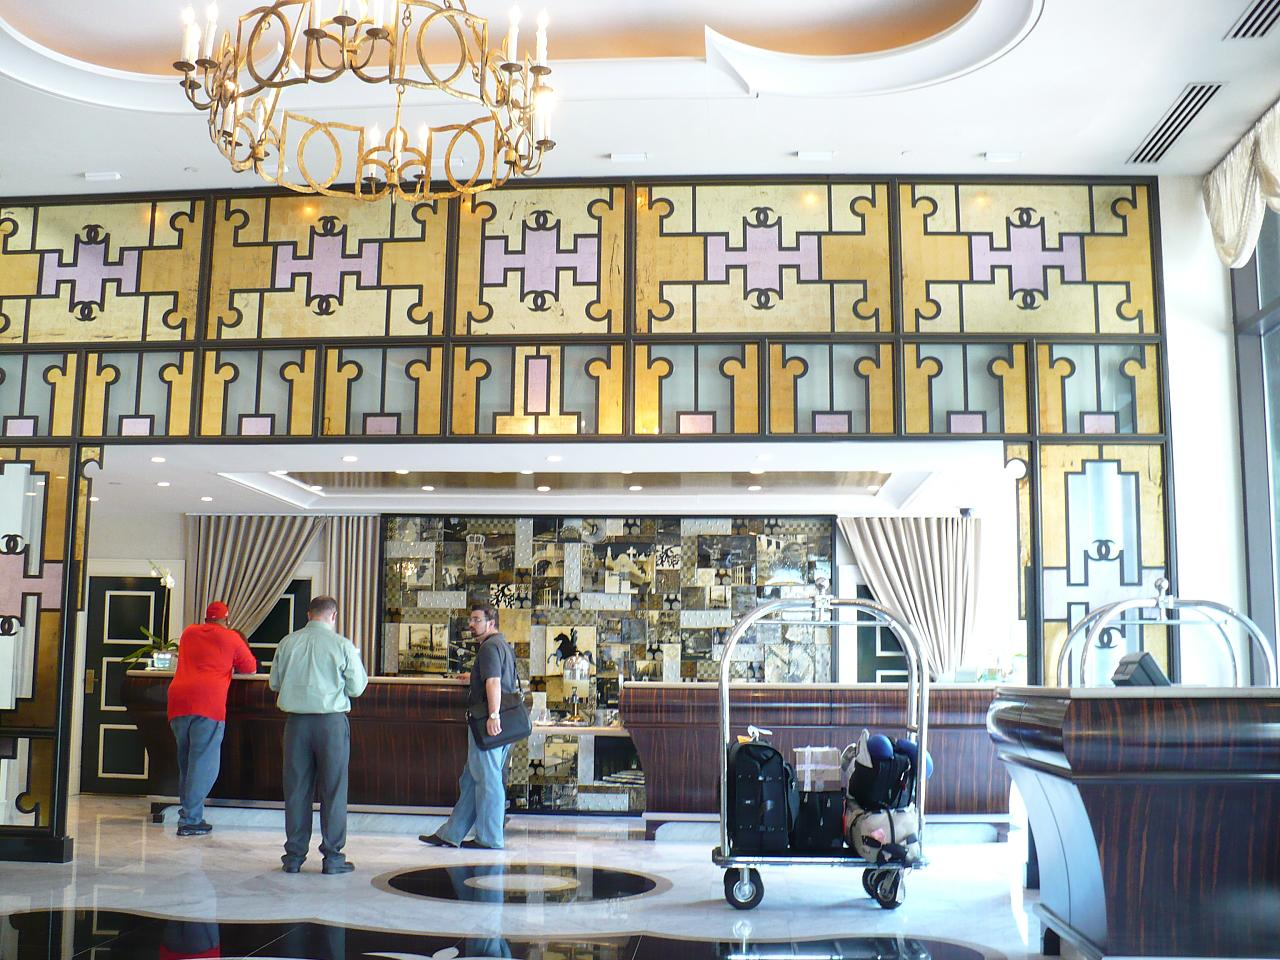 Hotels in New Orleans, LA